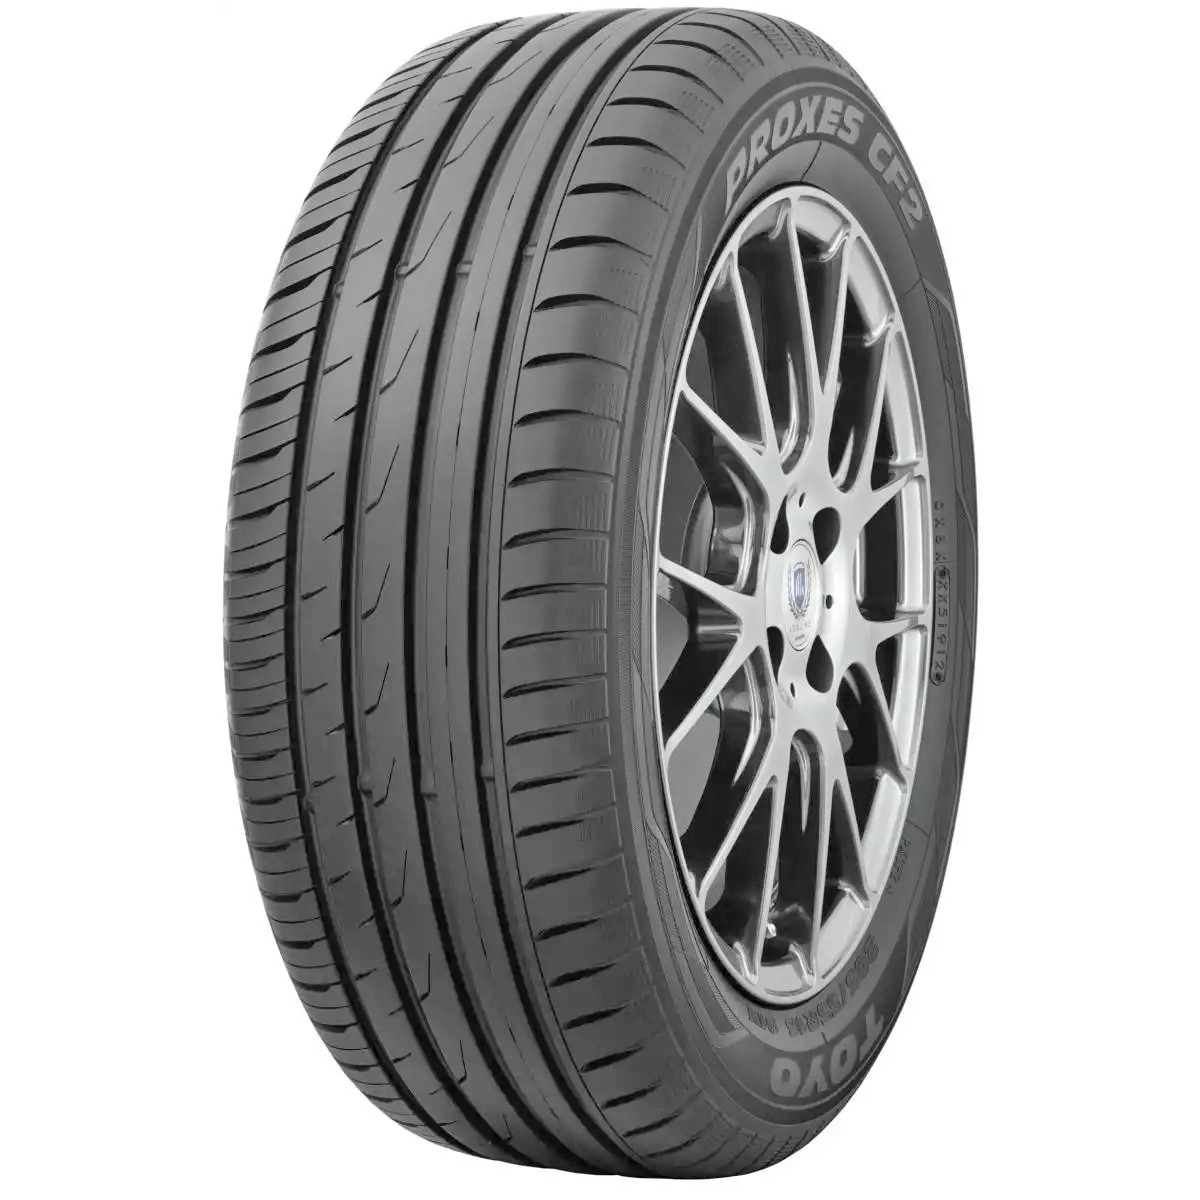 Toyo Tires Proxes CF2 SUV 235/65R18